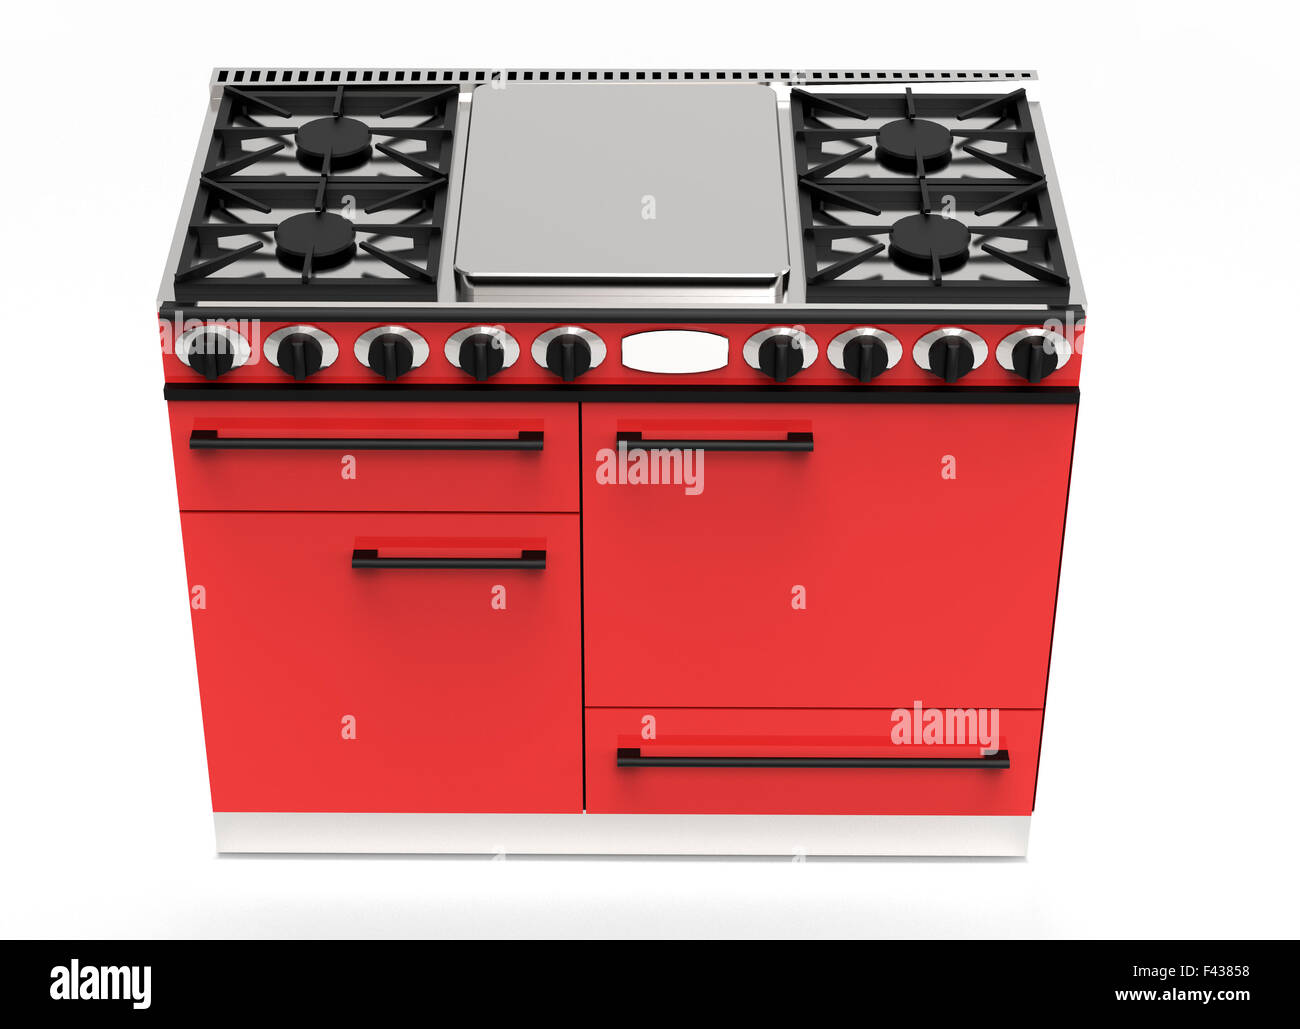 Modern kitchen appliance digital drawing of a red gas stove with hotplates and four ovens viewed high angle with - Stock Image